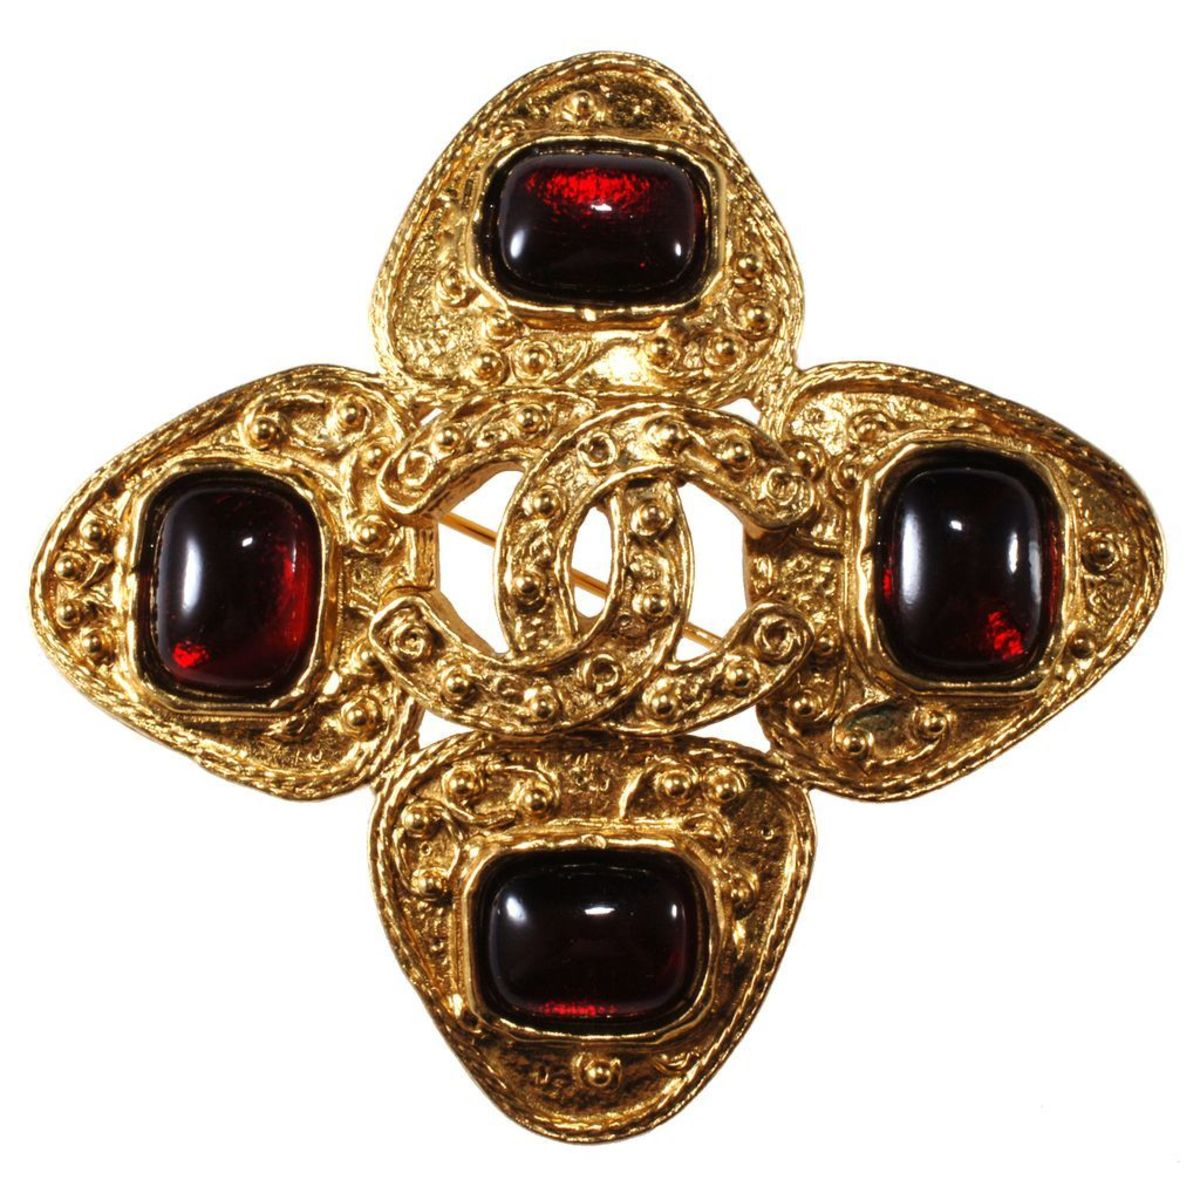 Chanel brooch with Gripoix glass cabochons, 1990s.